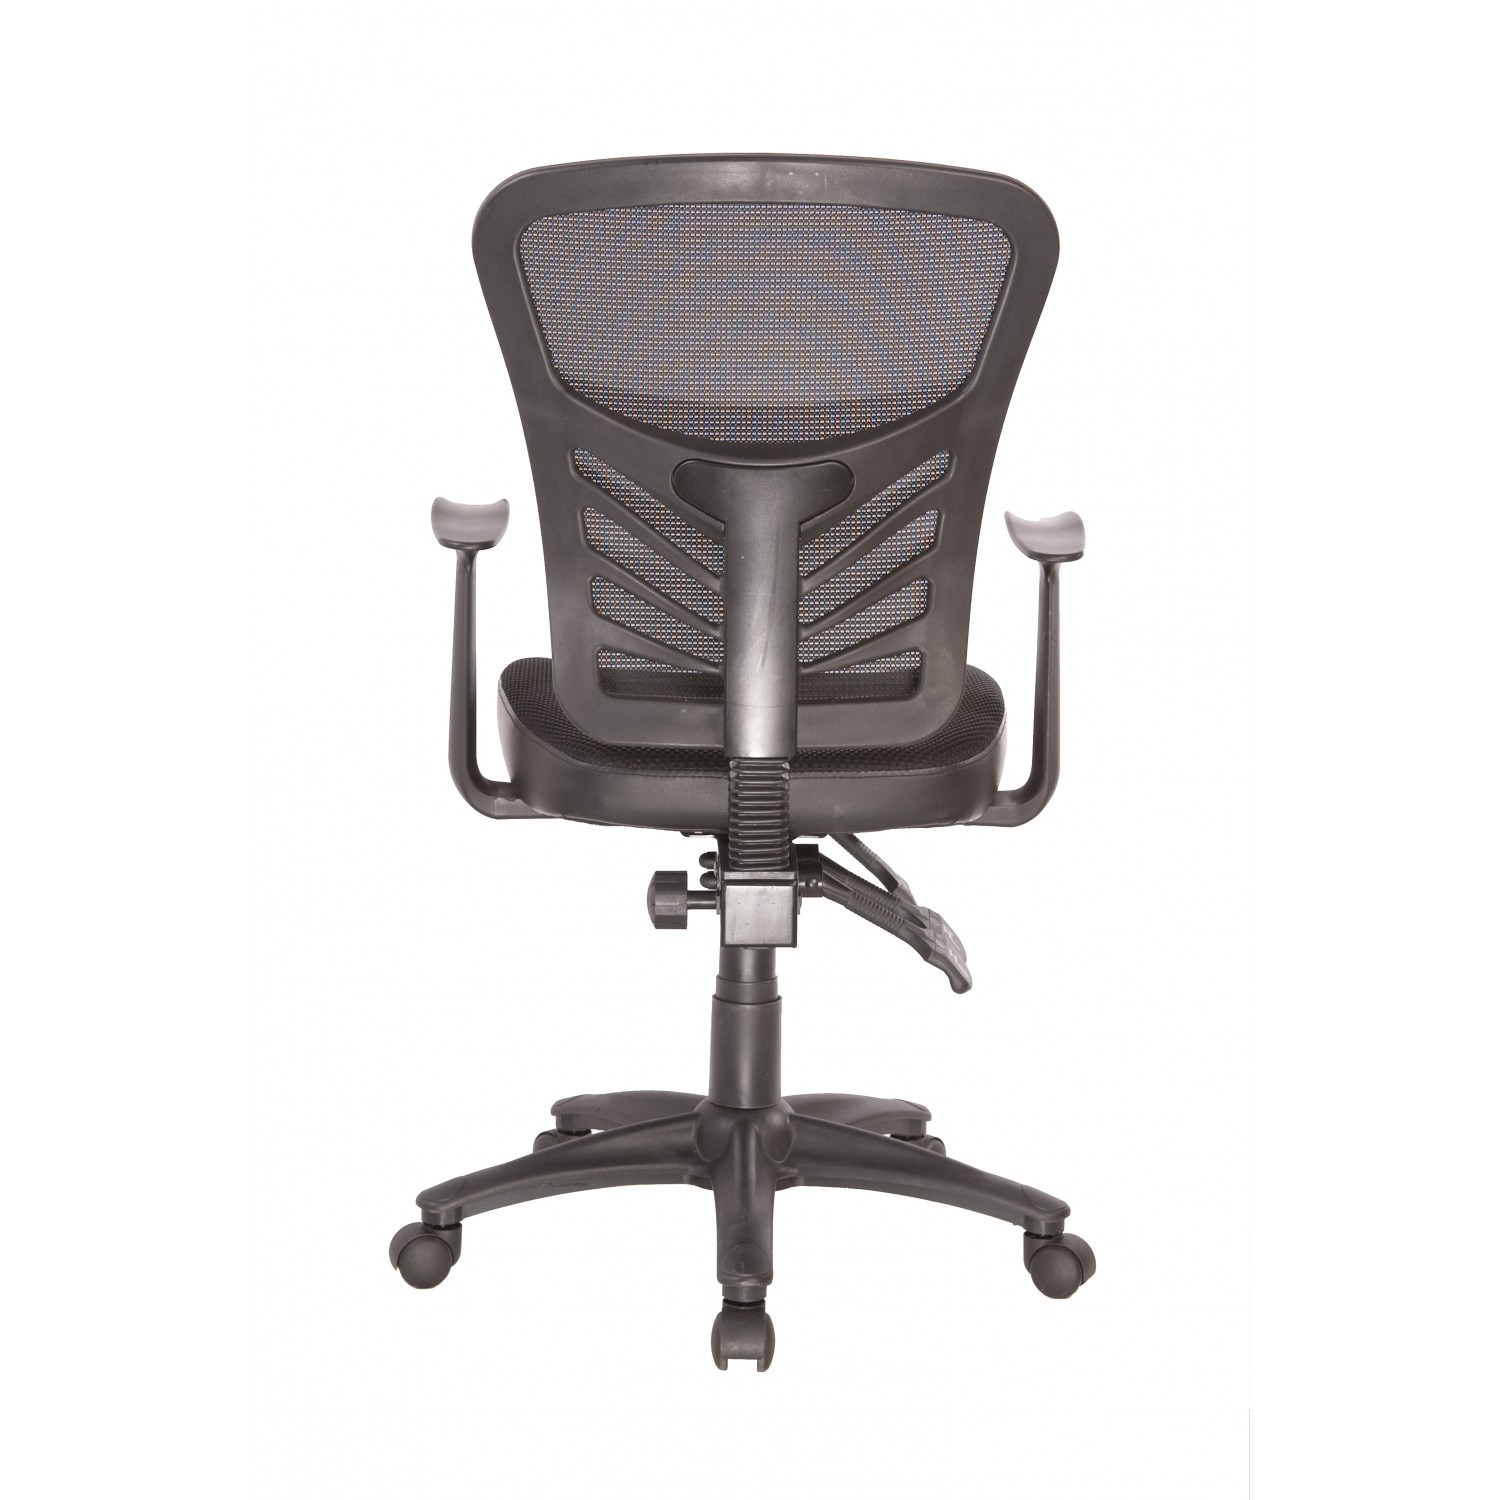 executive mesh office chair ladder back chairs with rush seats yarra furniture since 1990